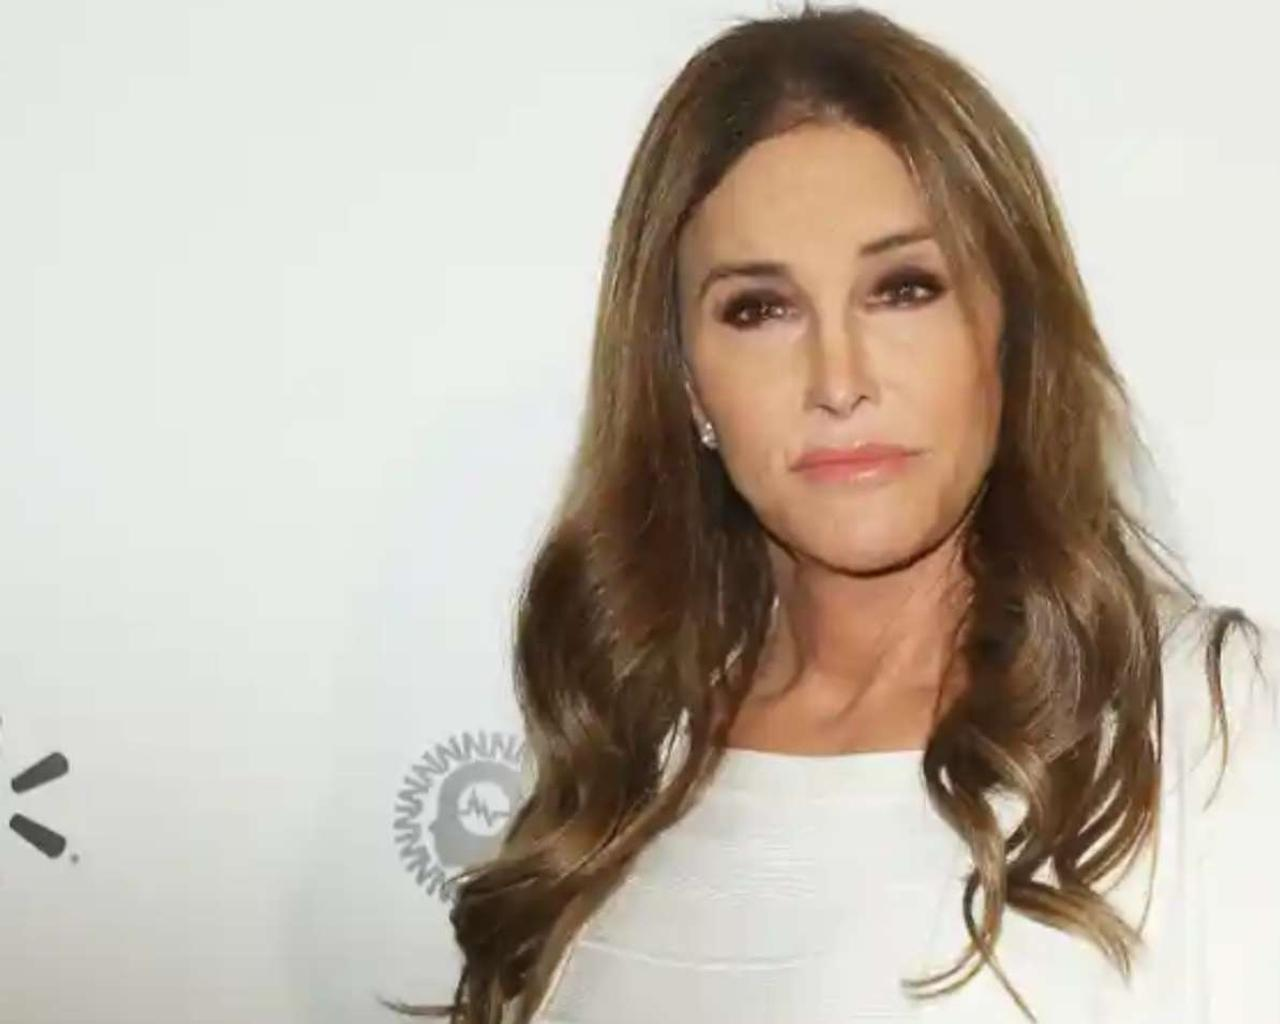 Olympics and Kardashian From the World to Politics: Caitlyn Jenner could seek California Governorship.